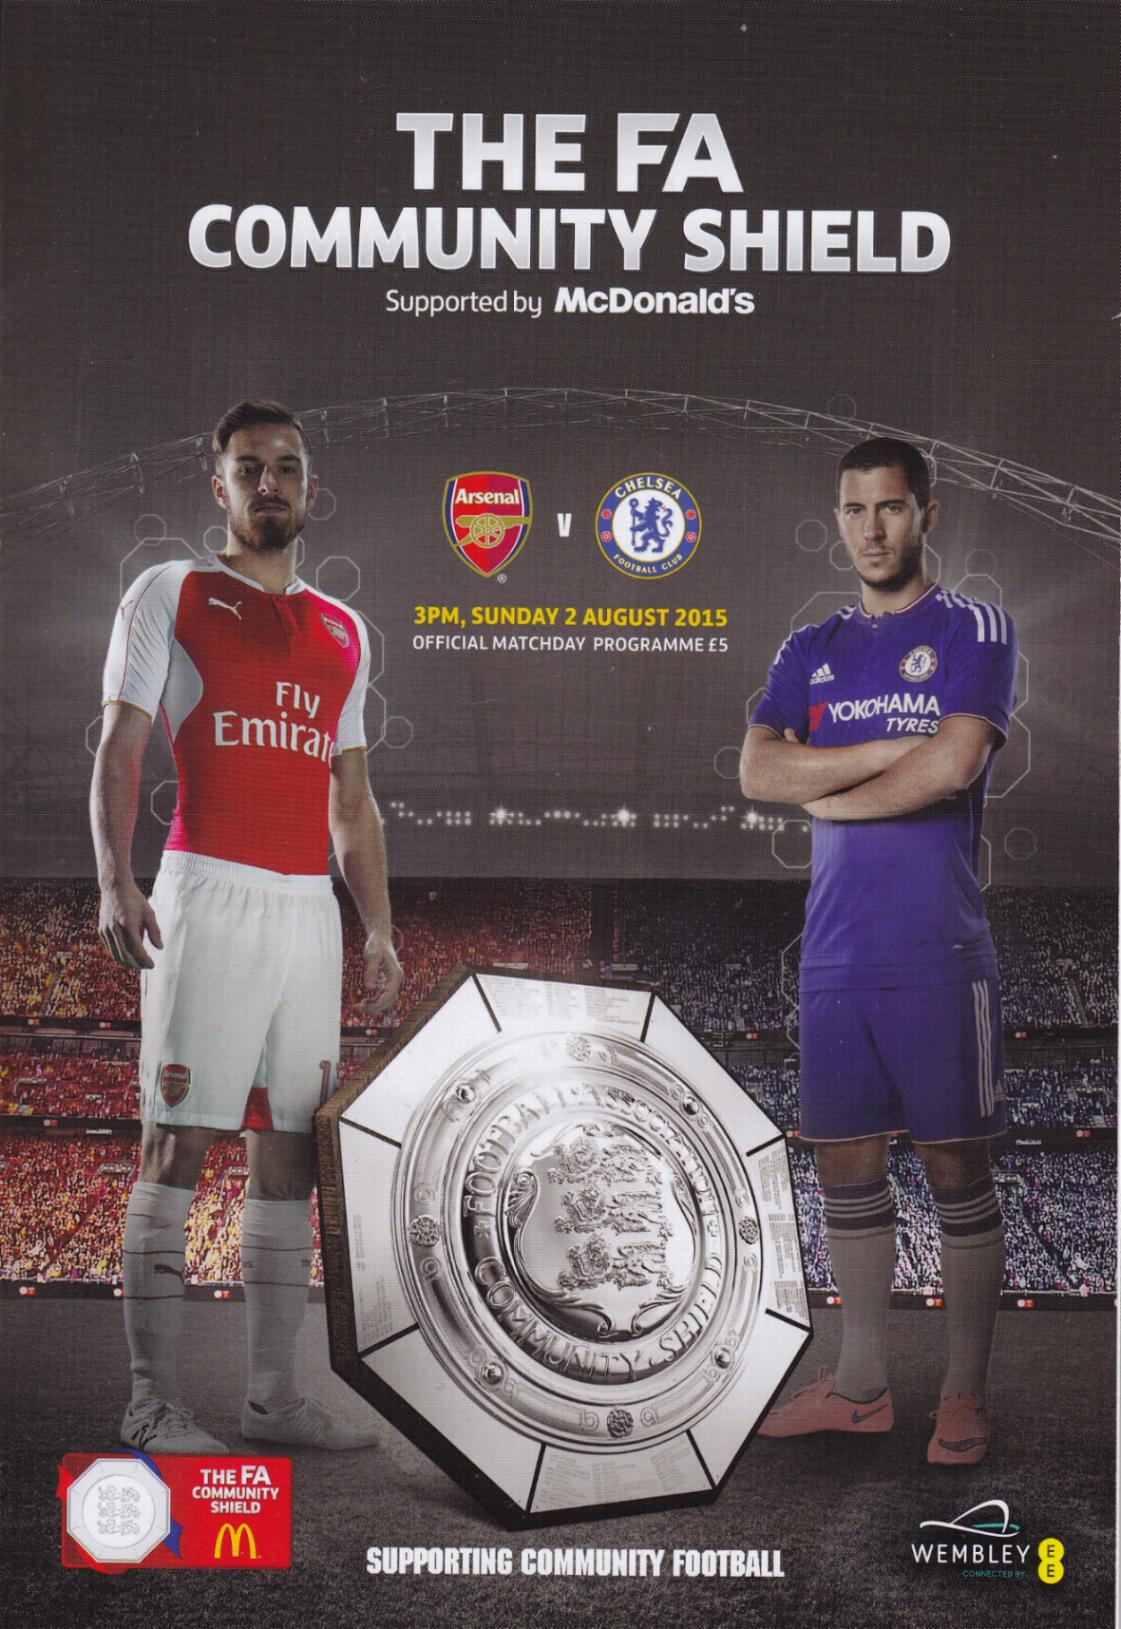 2015 COMMUNITY SHIELD - ARSENAL v CHELSEA